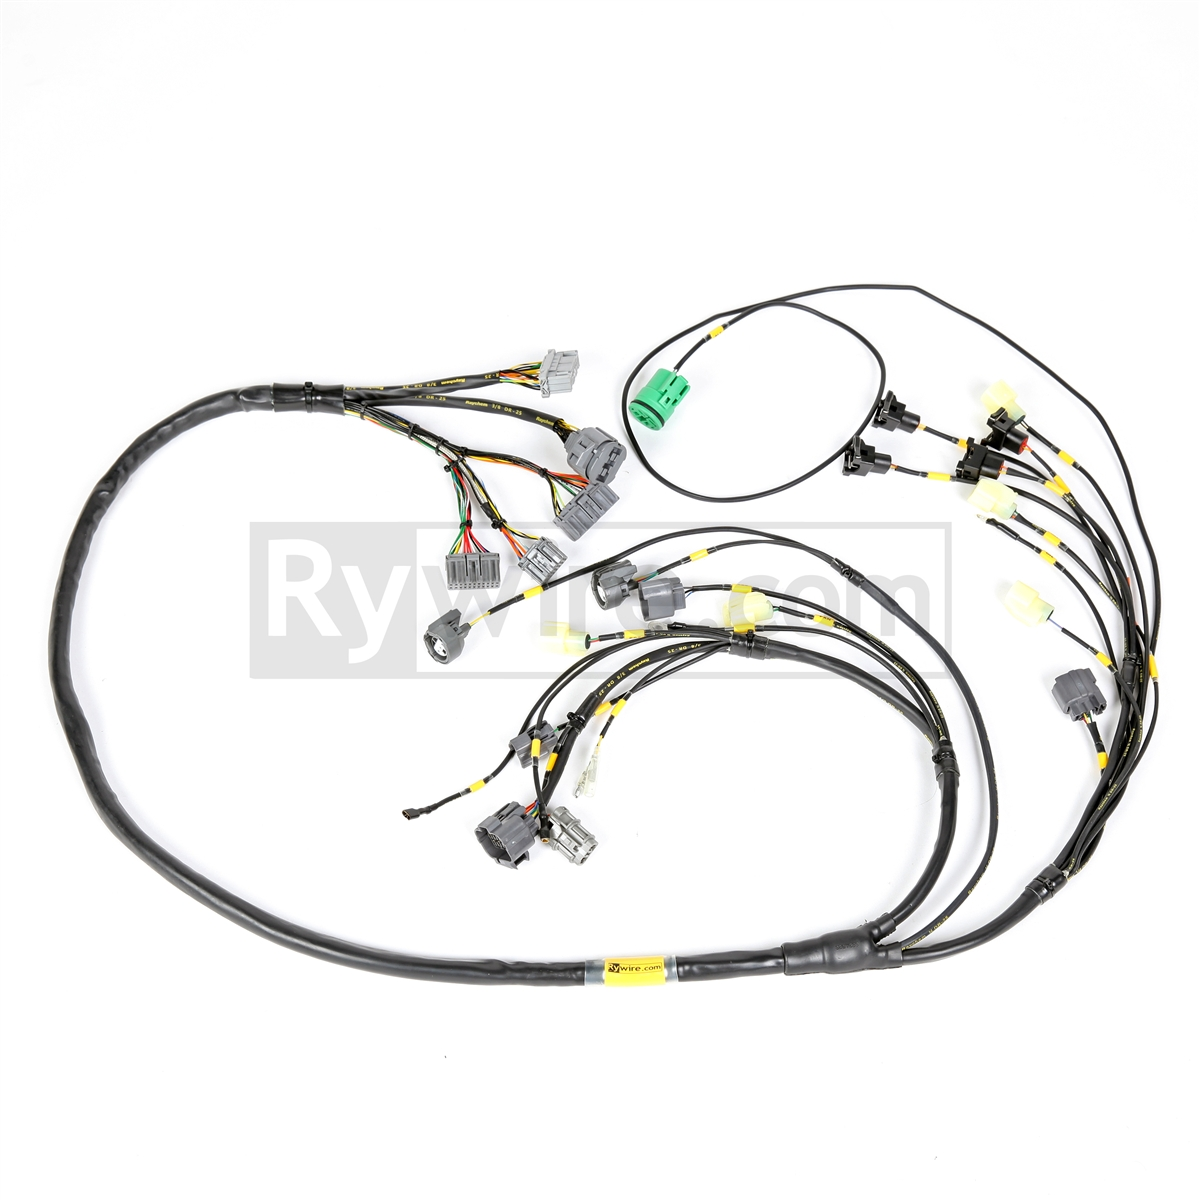 H1 Milspec 2?1402582650 rywire com mil spec f series (f20b) & h series (h22) harness h22 wiring harness for eg at webbmarketing.co